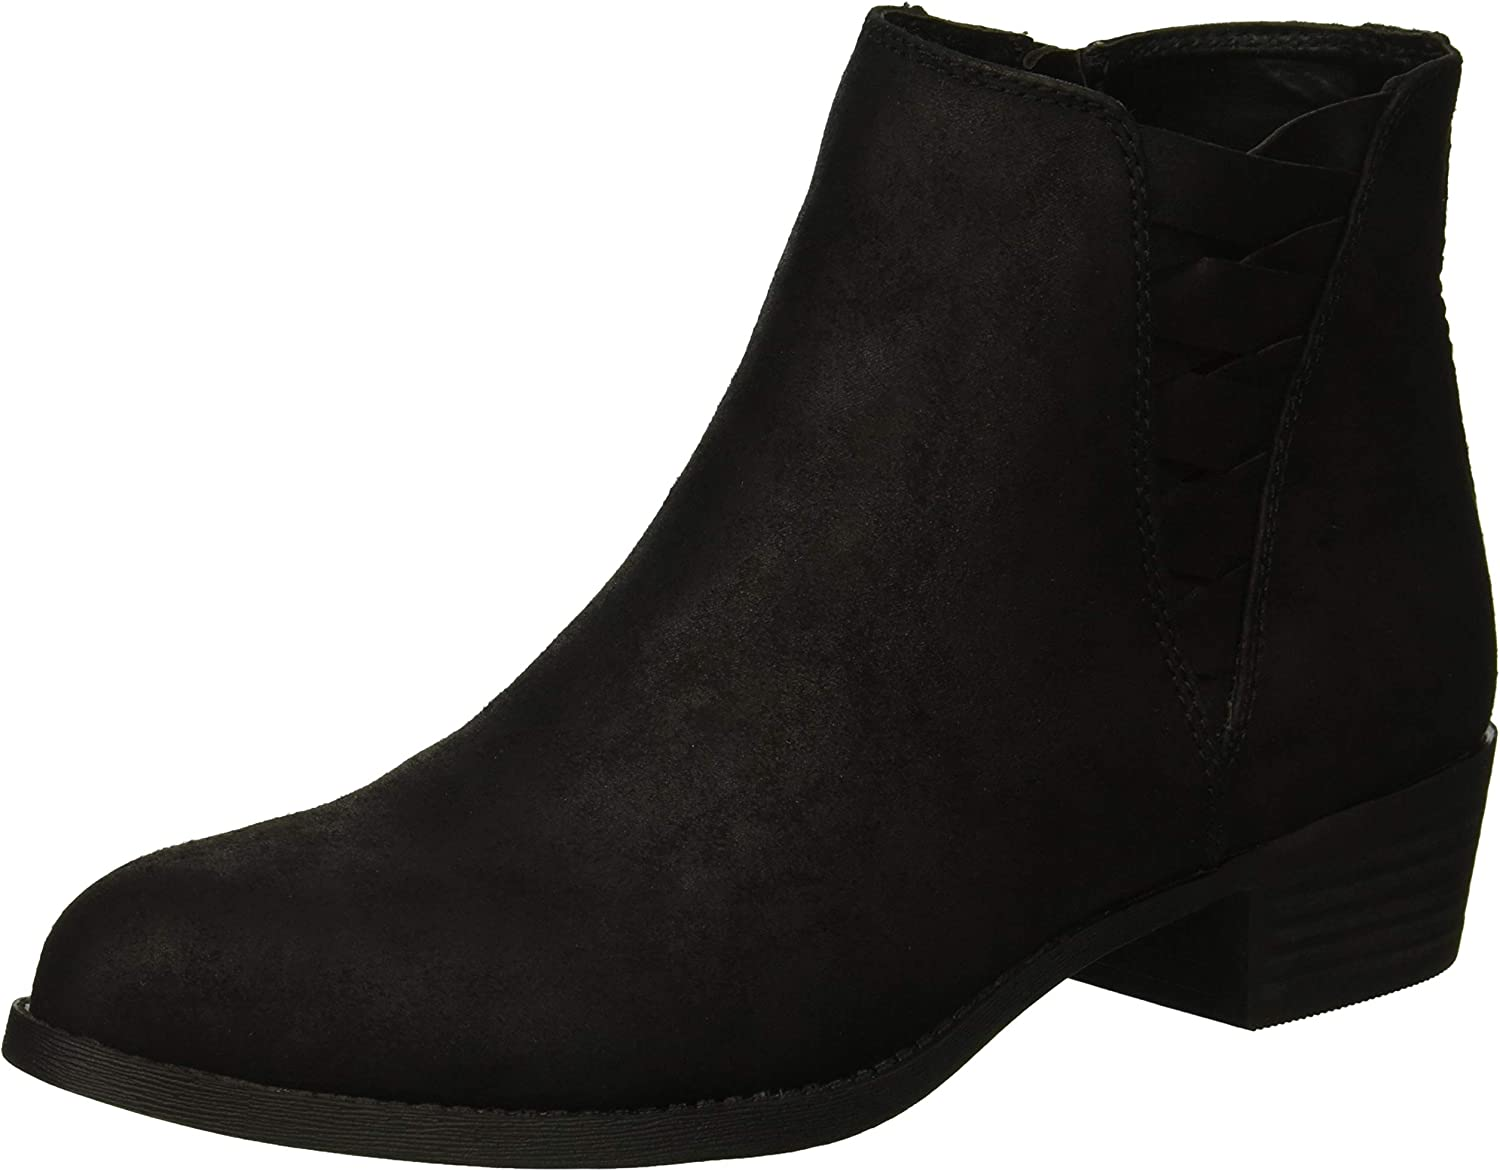 Carlos by Santana Max 54% OFF Women's Bert Gifts Ankle Boot